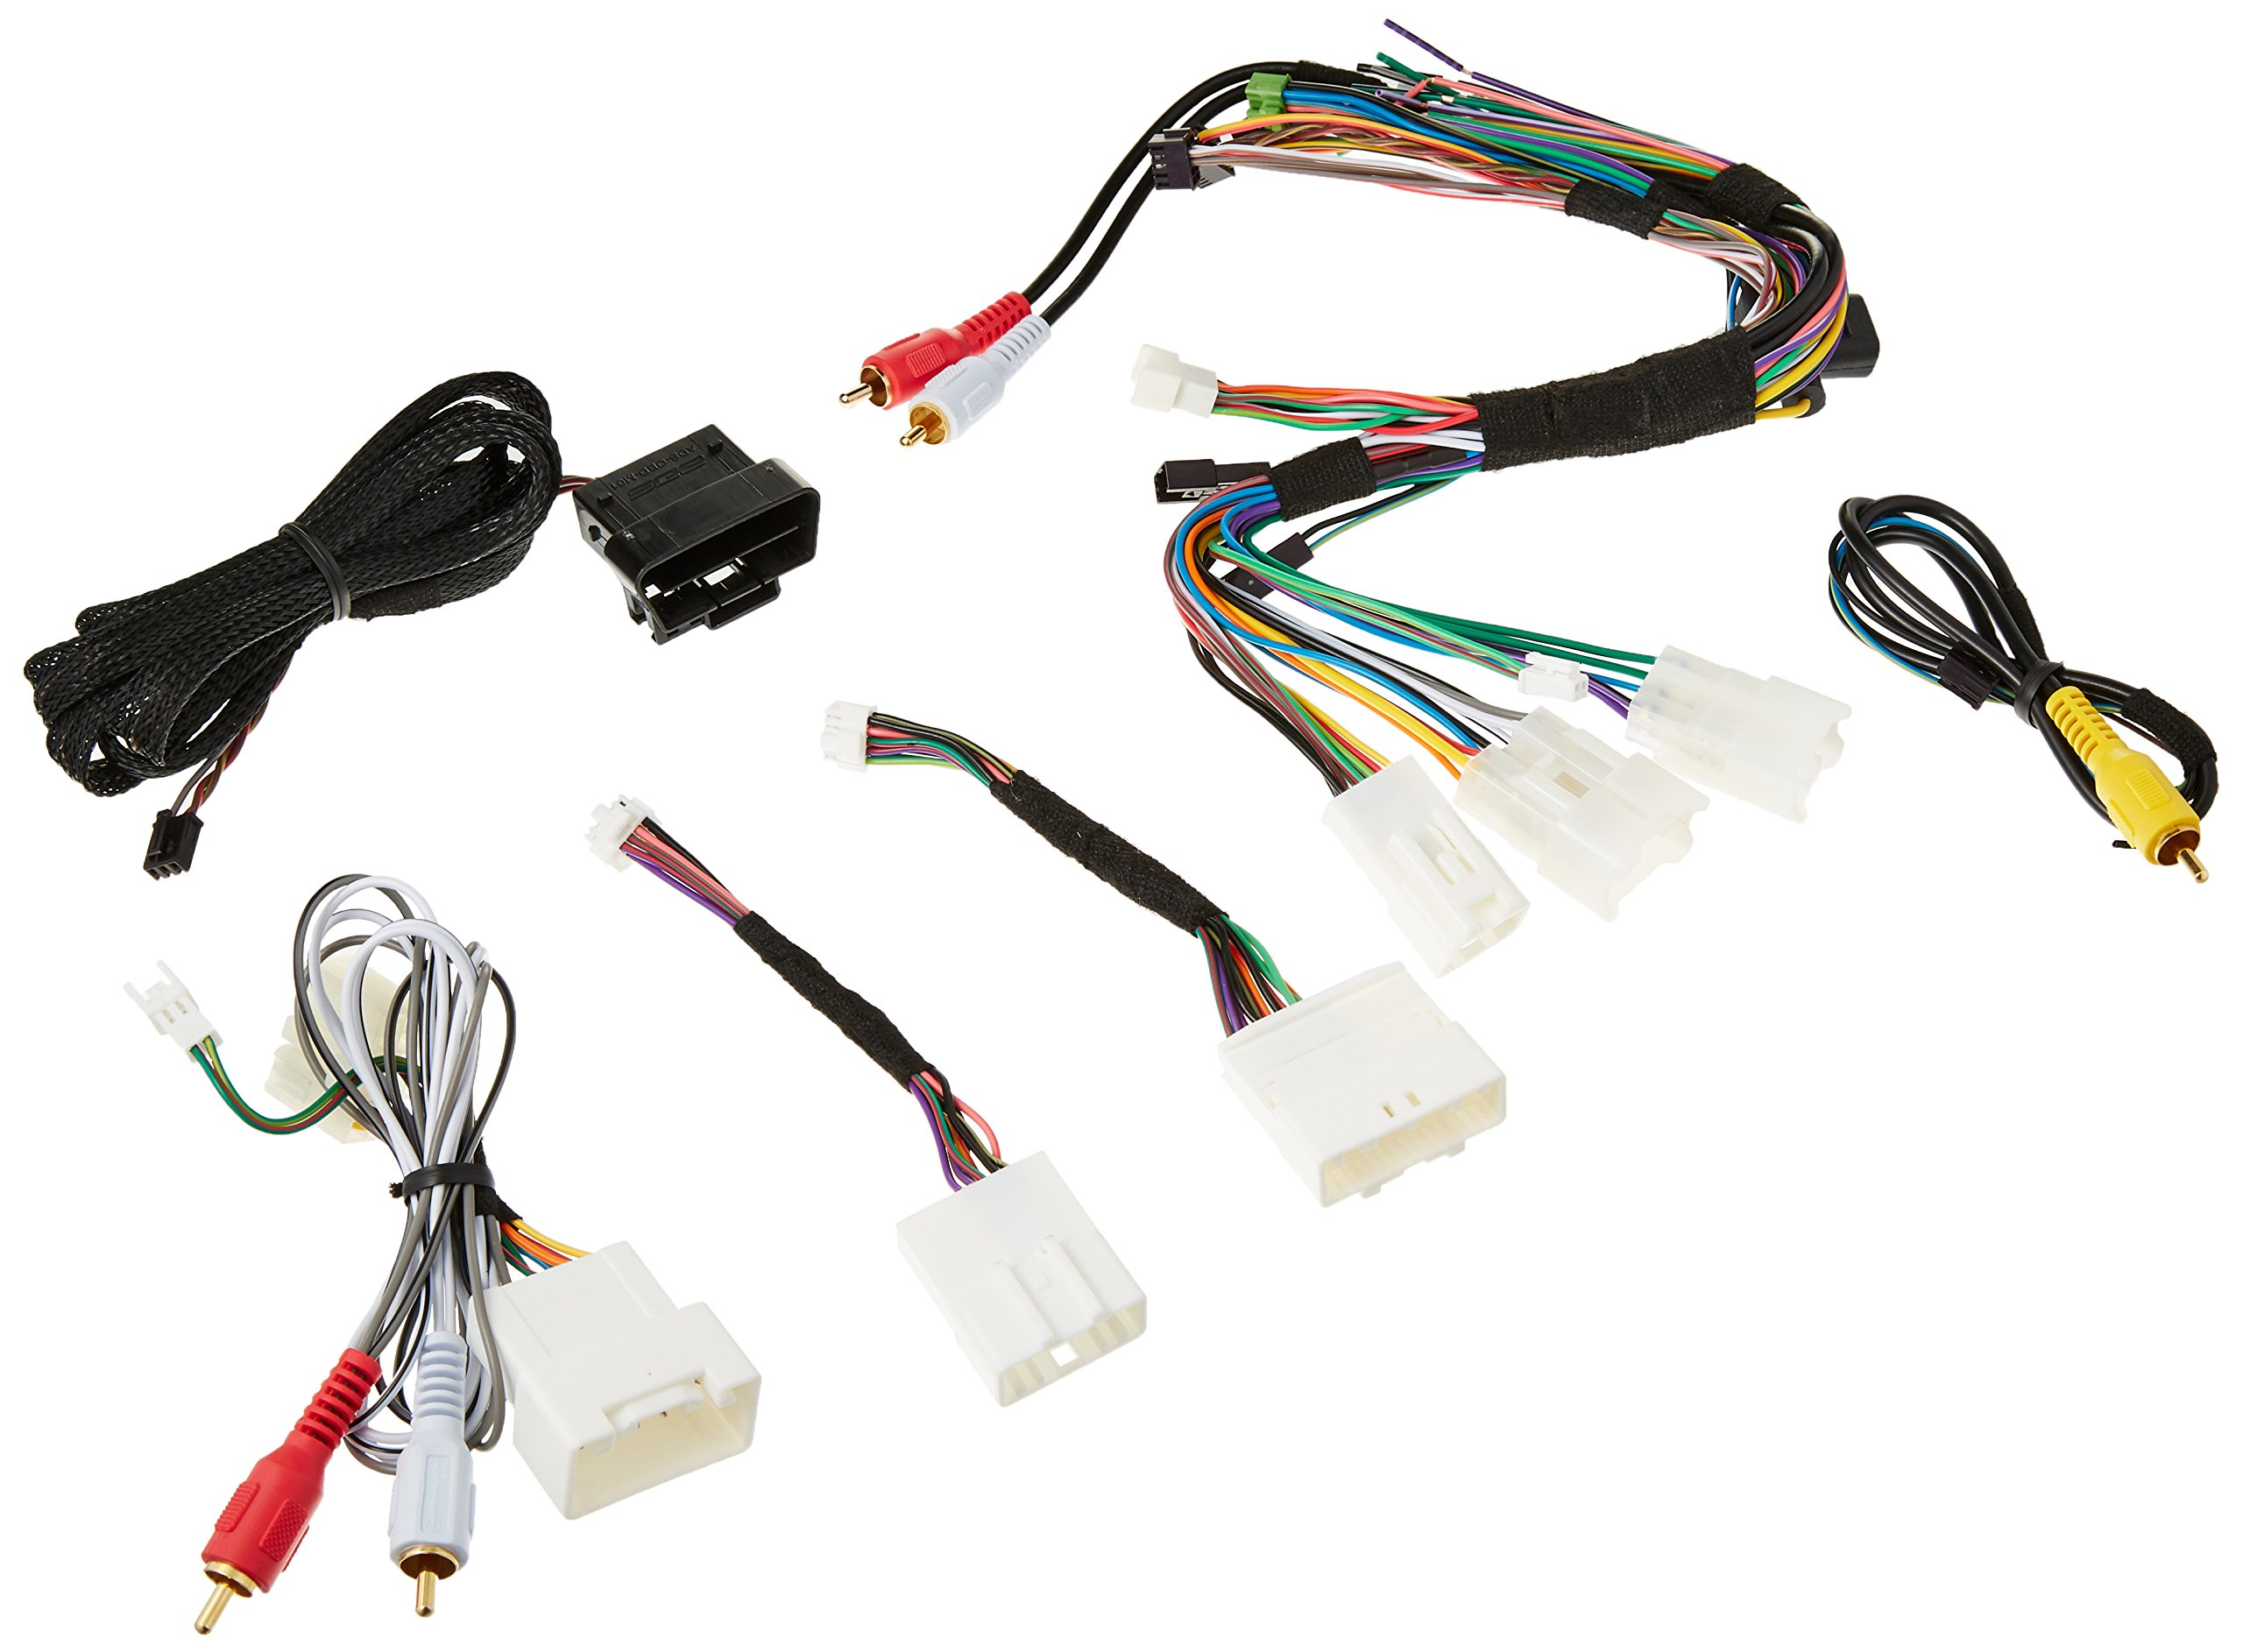 iDatalink Maestro ADS-HRN-RR-TO1 TO1 Plug & Play T-Harness for Toyota Vehicles